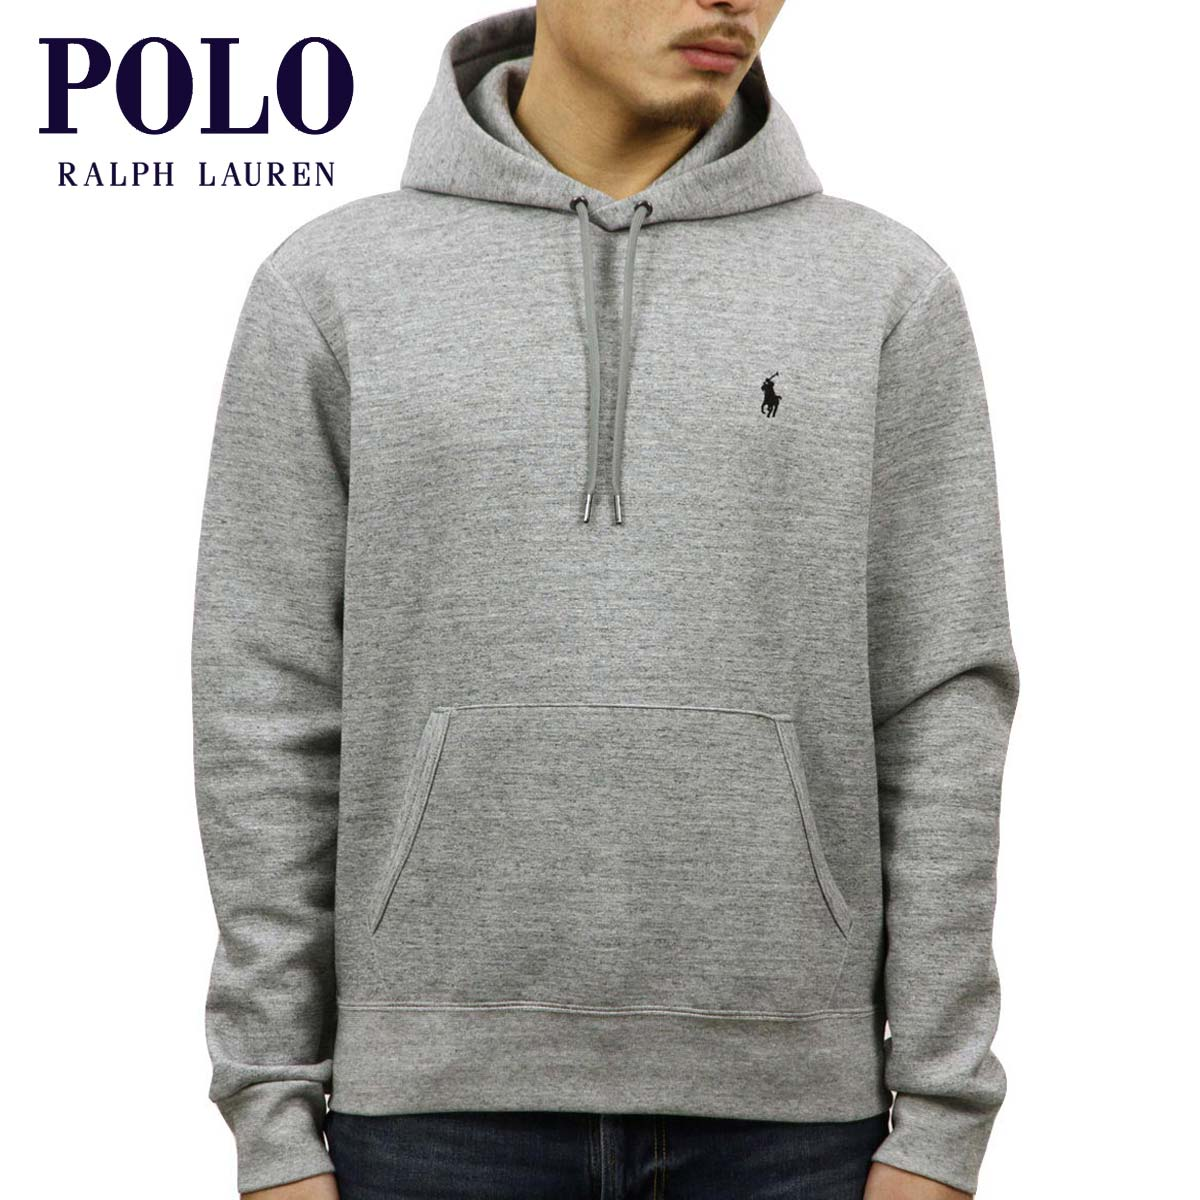 6c8405e7b7c0 Polo Ralph Lauren Mens Double Knit Graphic Hoodie